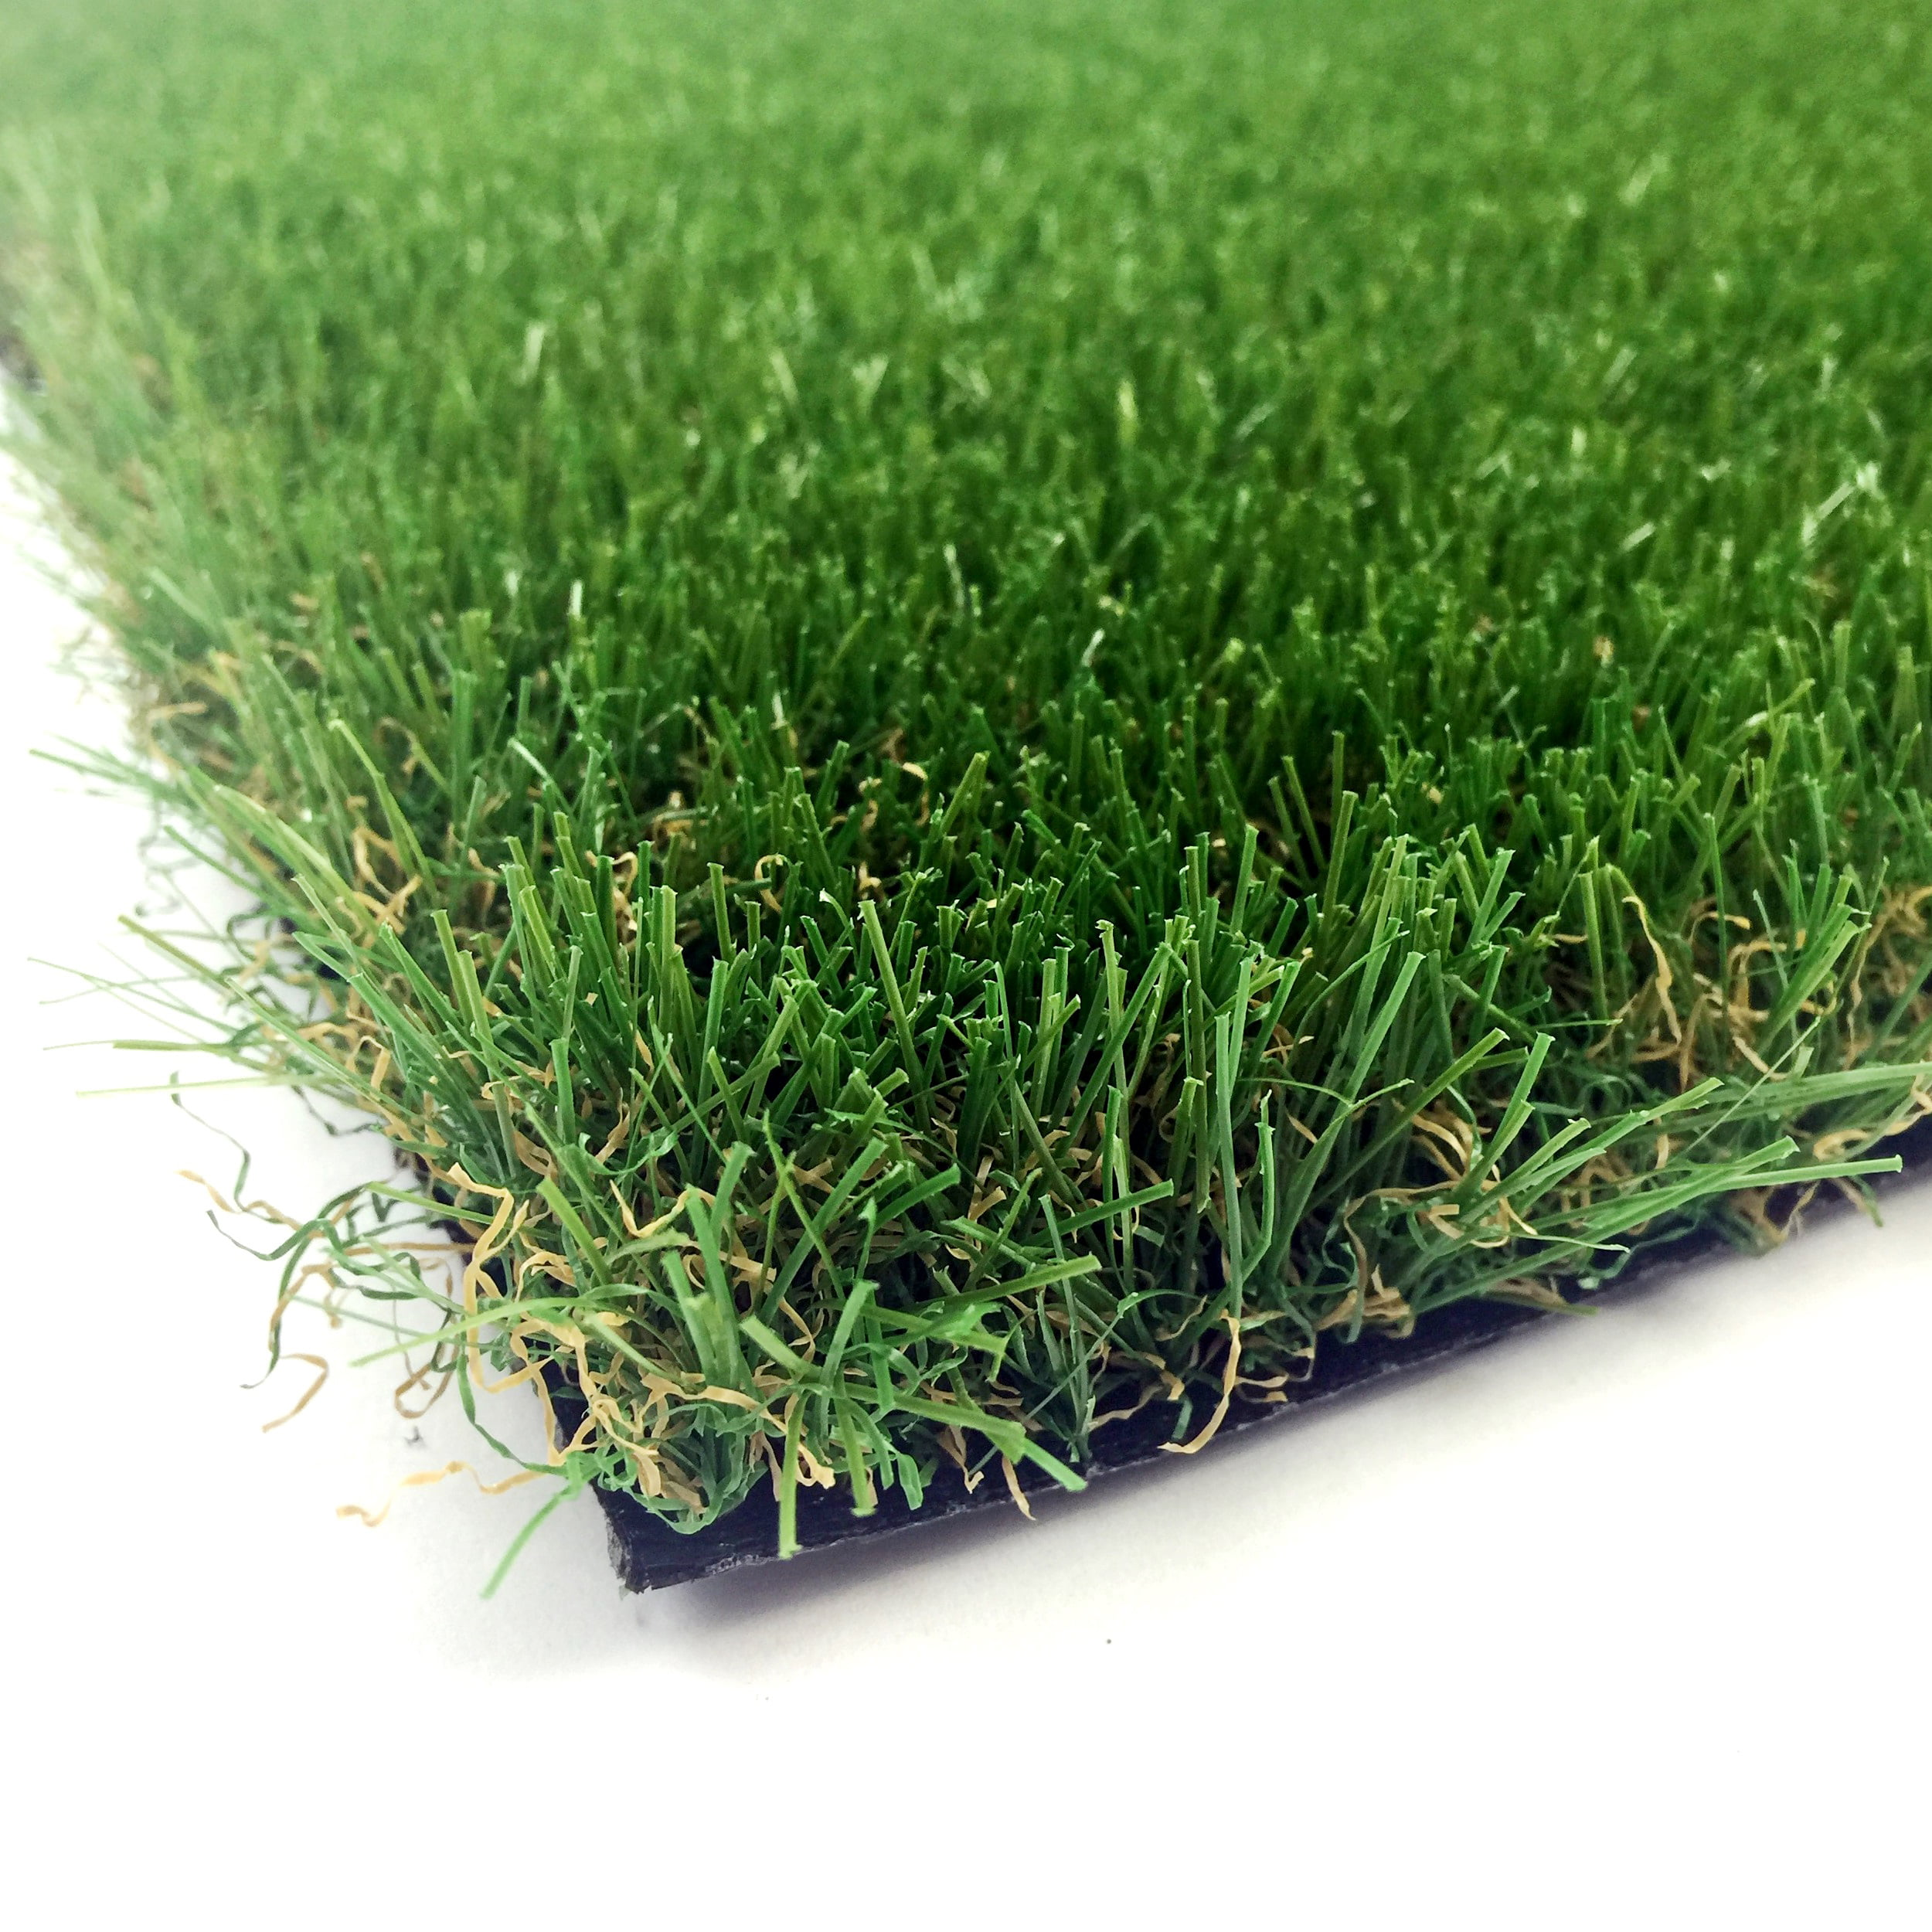 AllGreen Chenille Deluxe Multi Purpose Artificial Grass Synthetic Turf Indoor Outdoor... by Global Syn-Turf, Inc